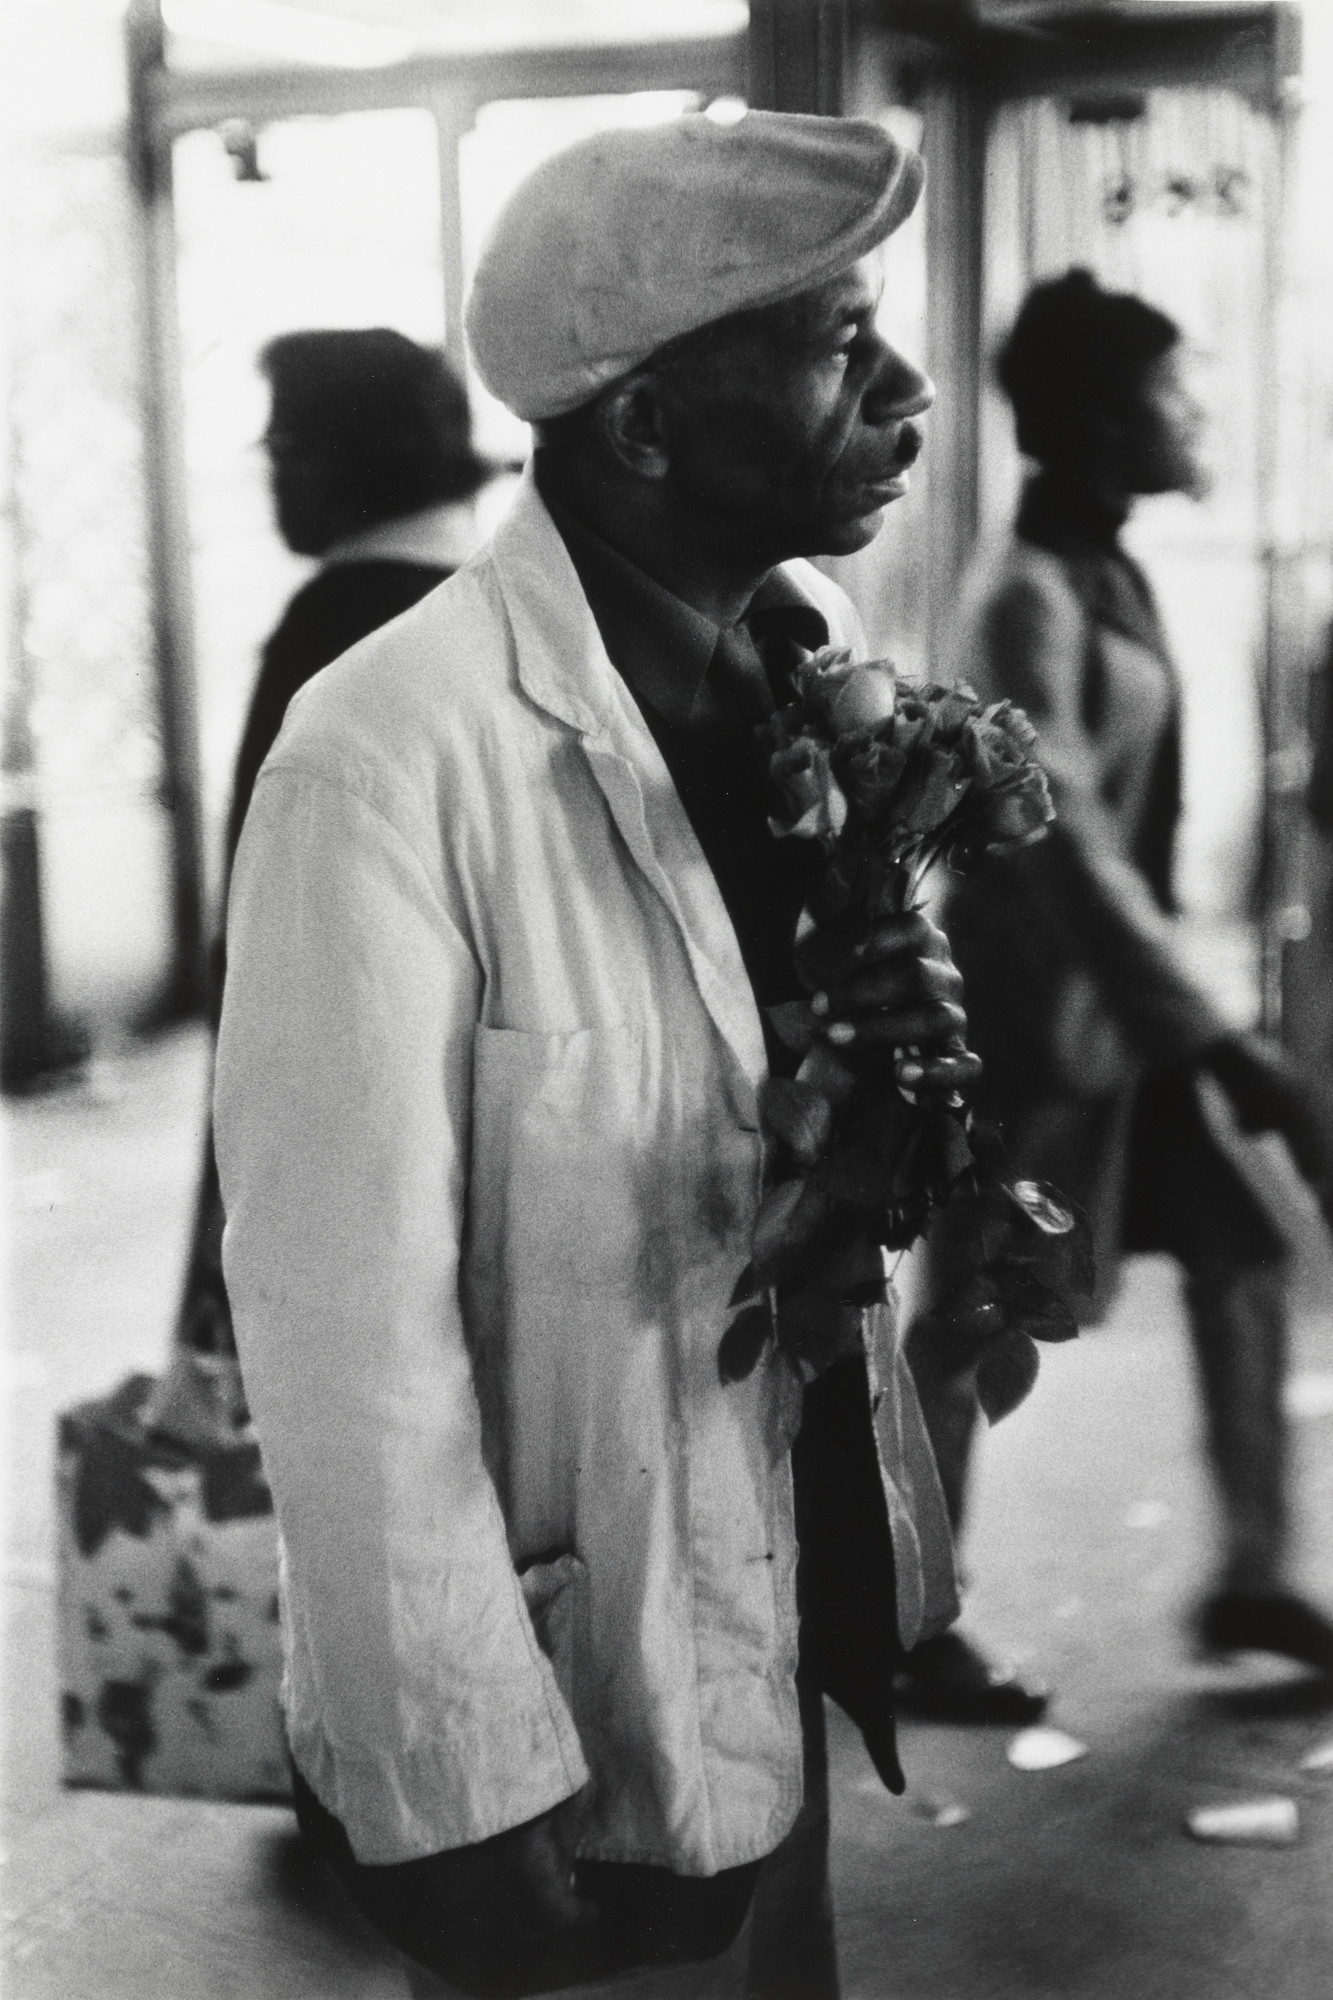 Beuford Smith. Man with Roses, 125th. St. NYC. 1968